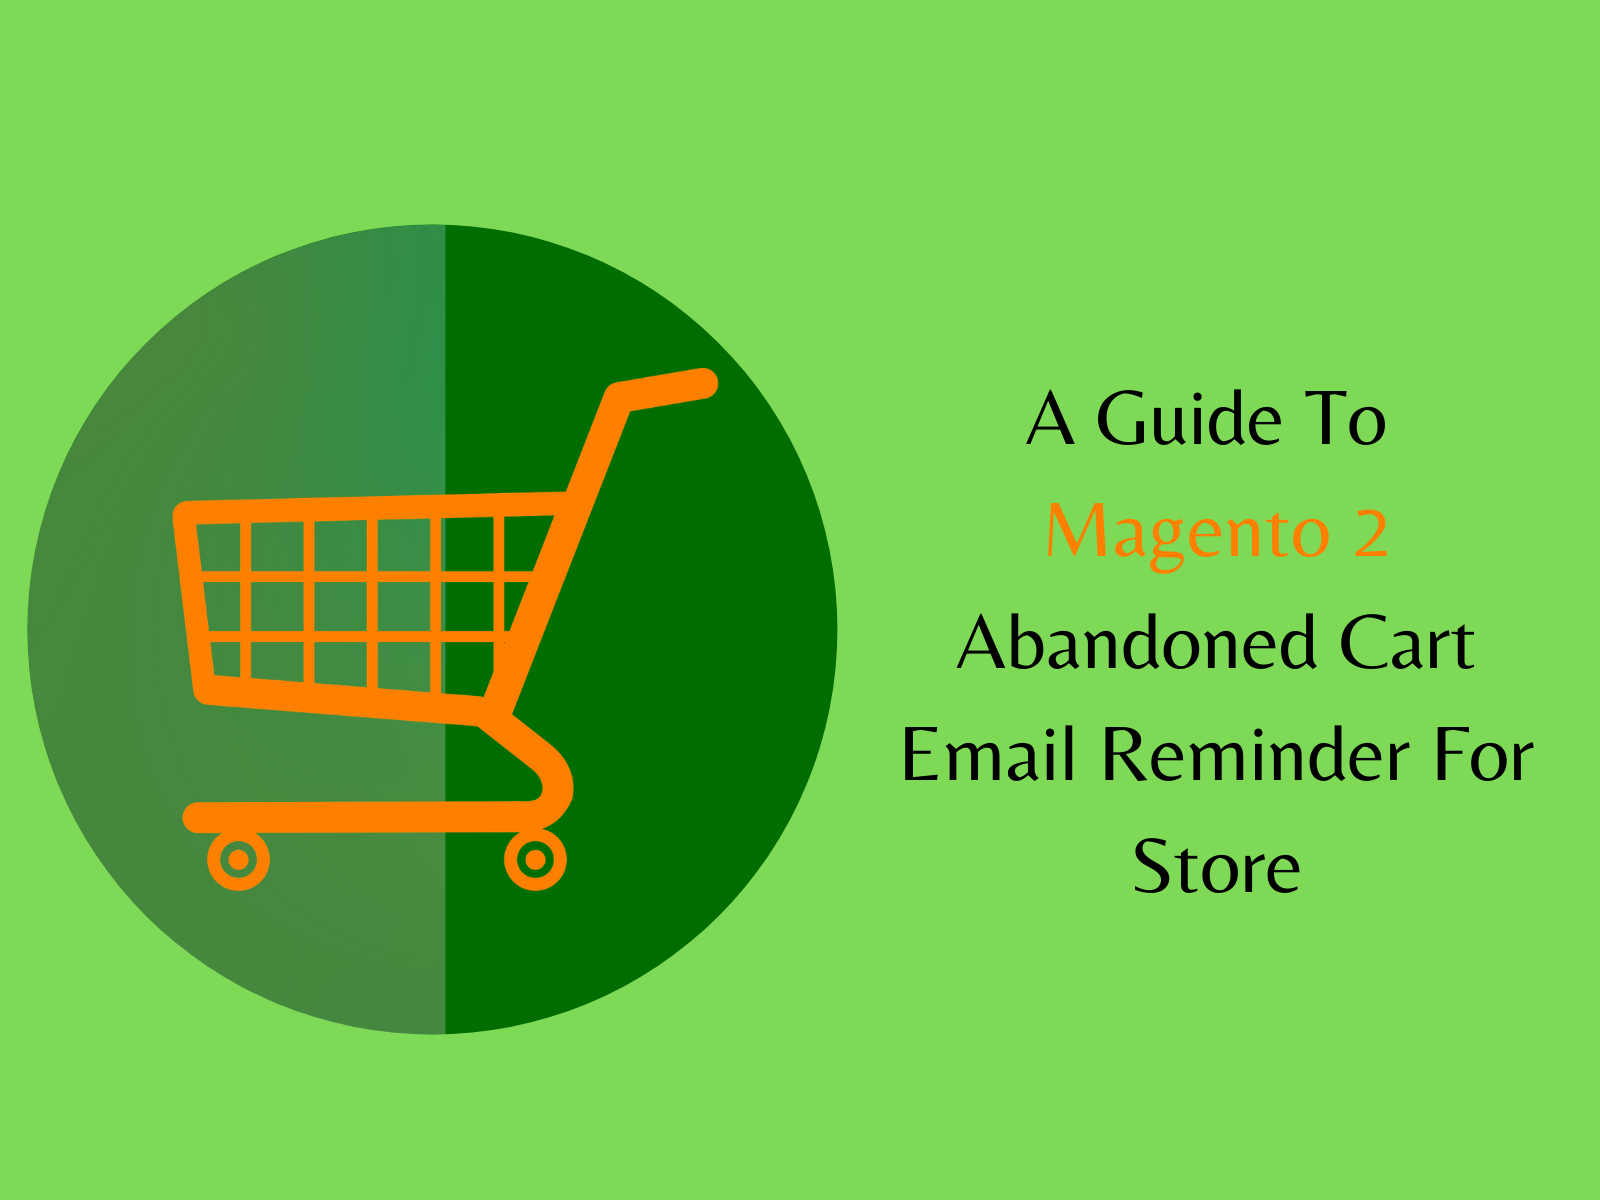 A Guide To Magento 2 Abandoned Cart Email Reminder For Store